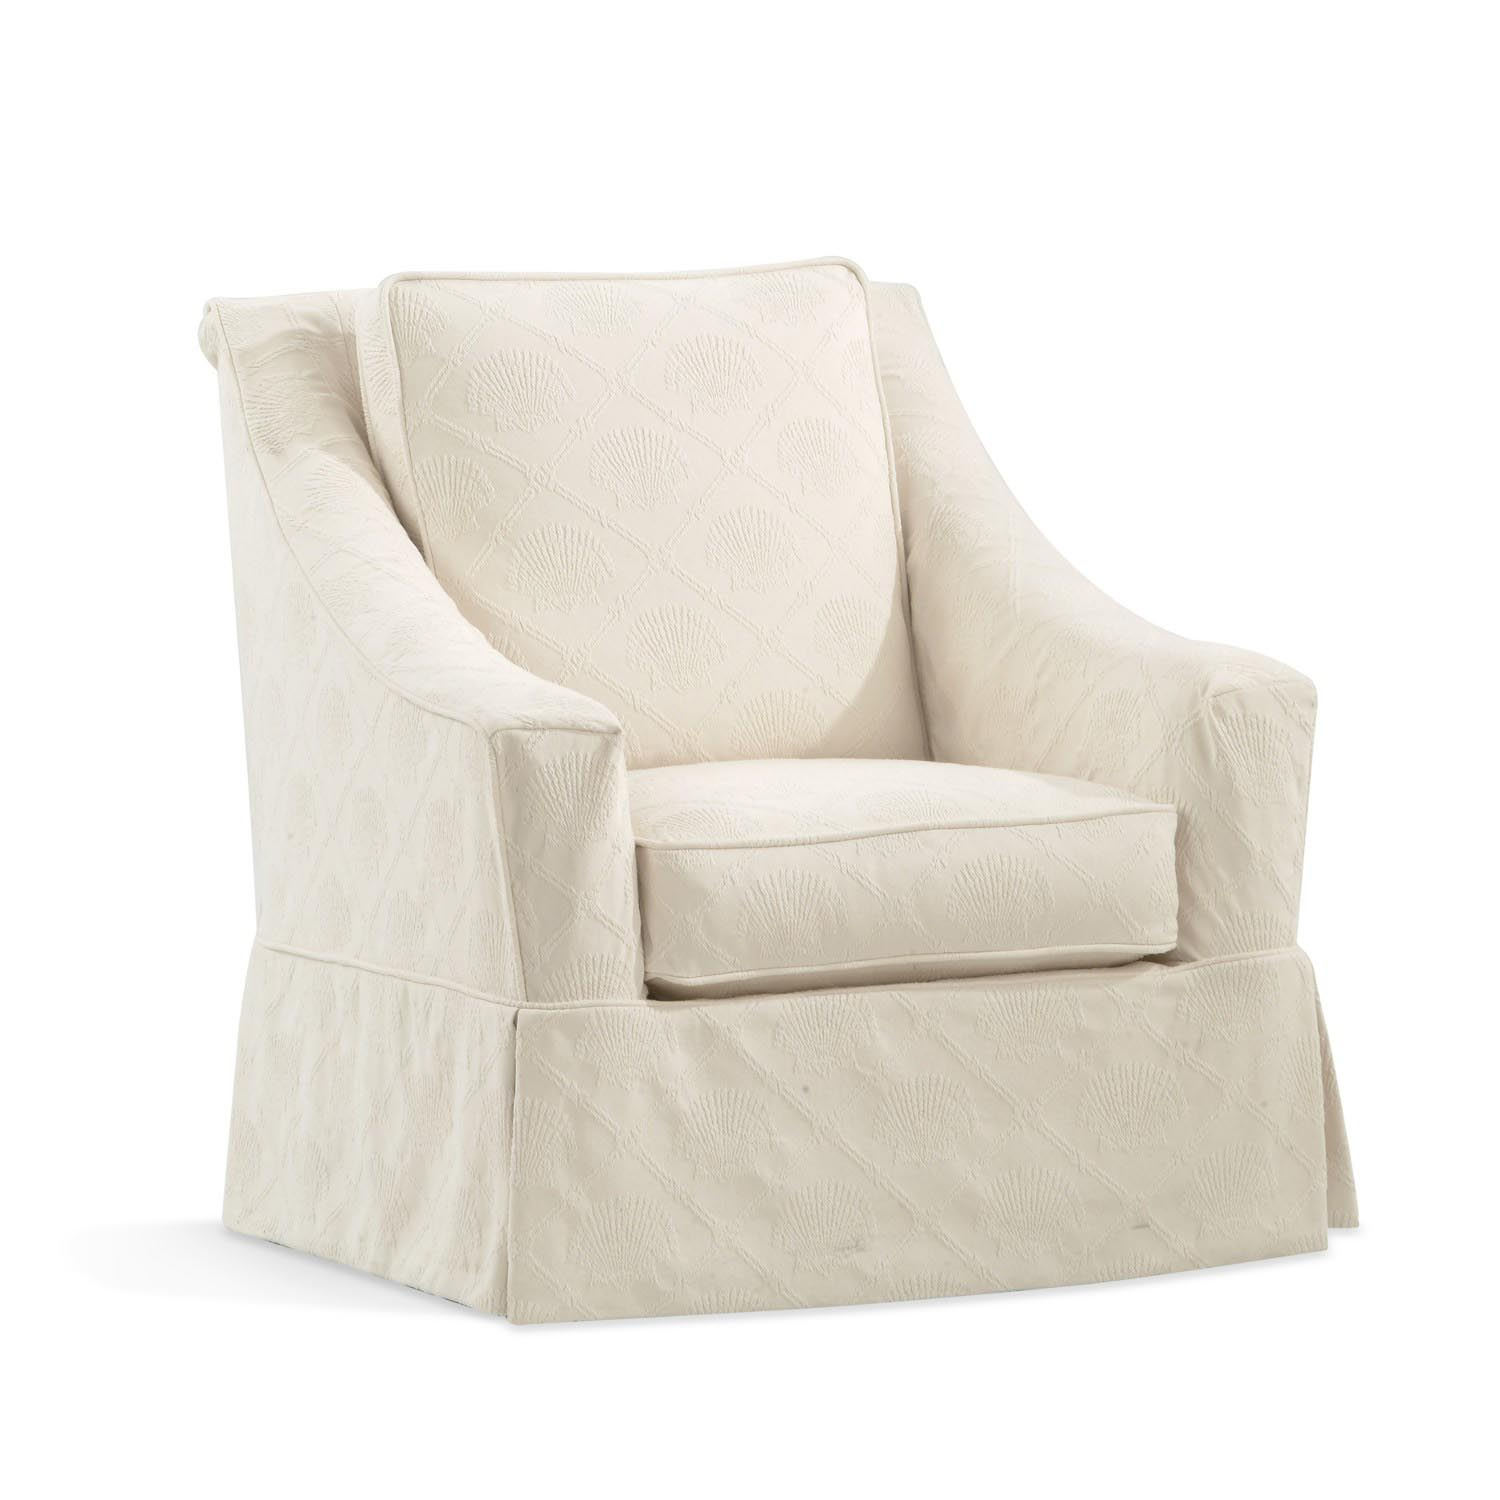 Bailey Accent Chair | American Country Intended For Loft Smokey Swivel Accent Chairs (Image 2 of 20)